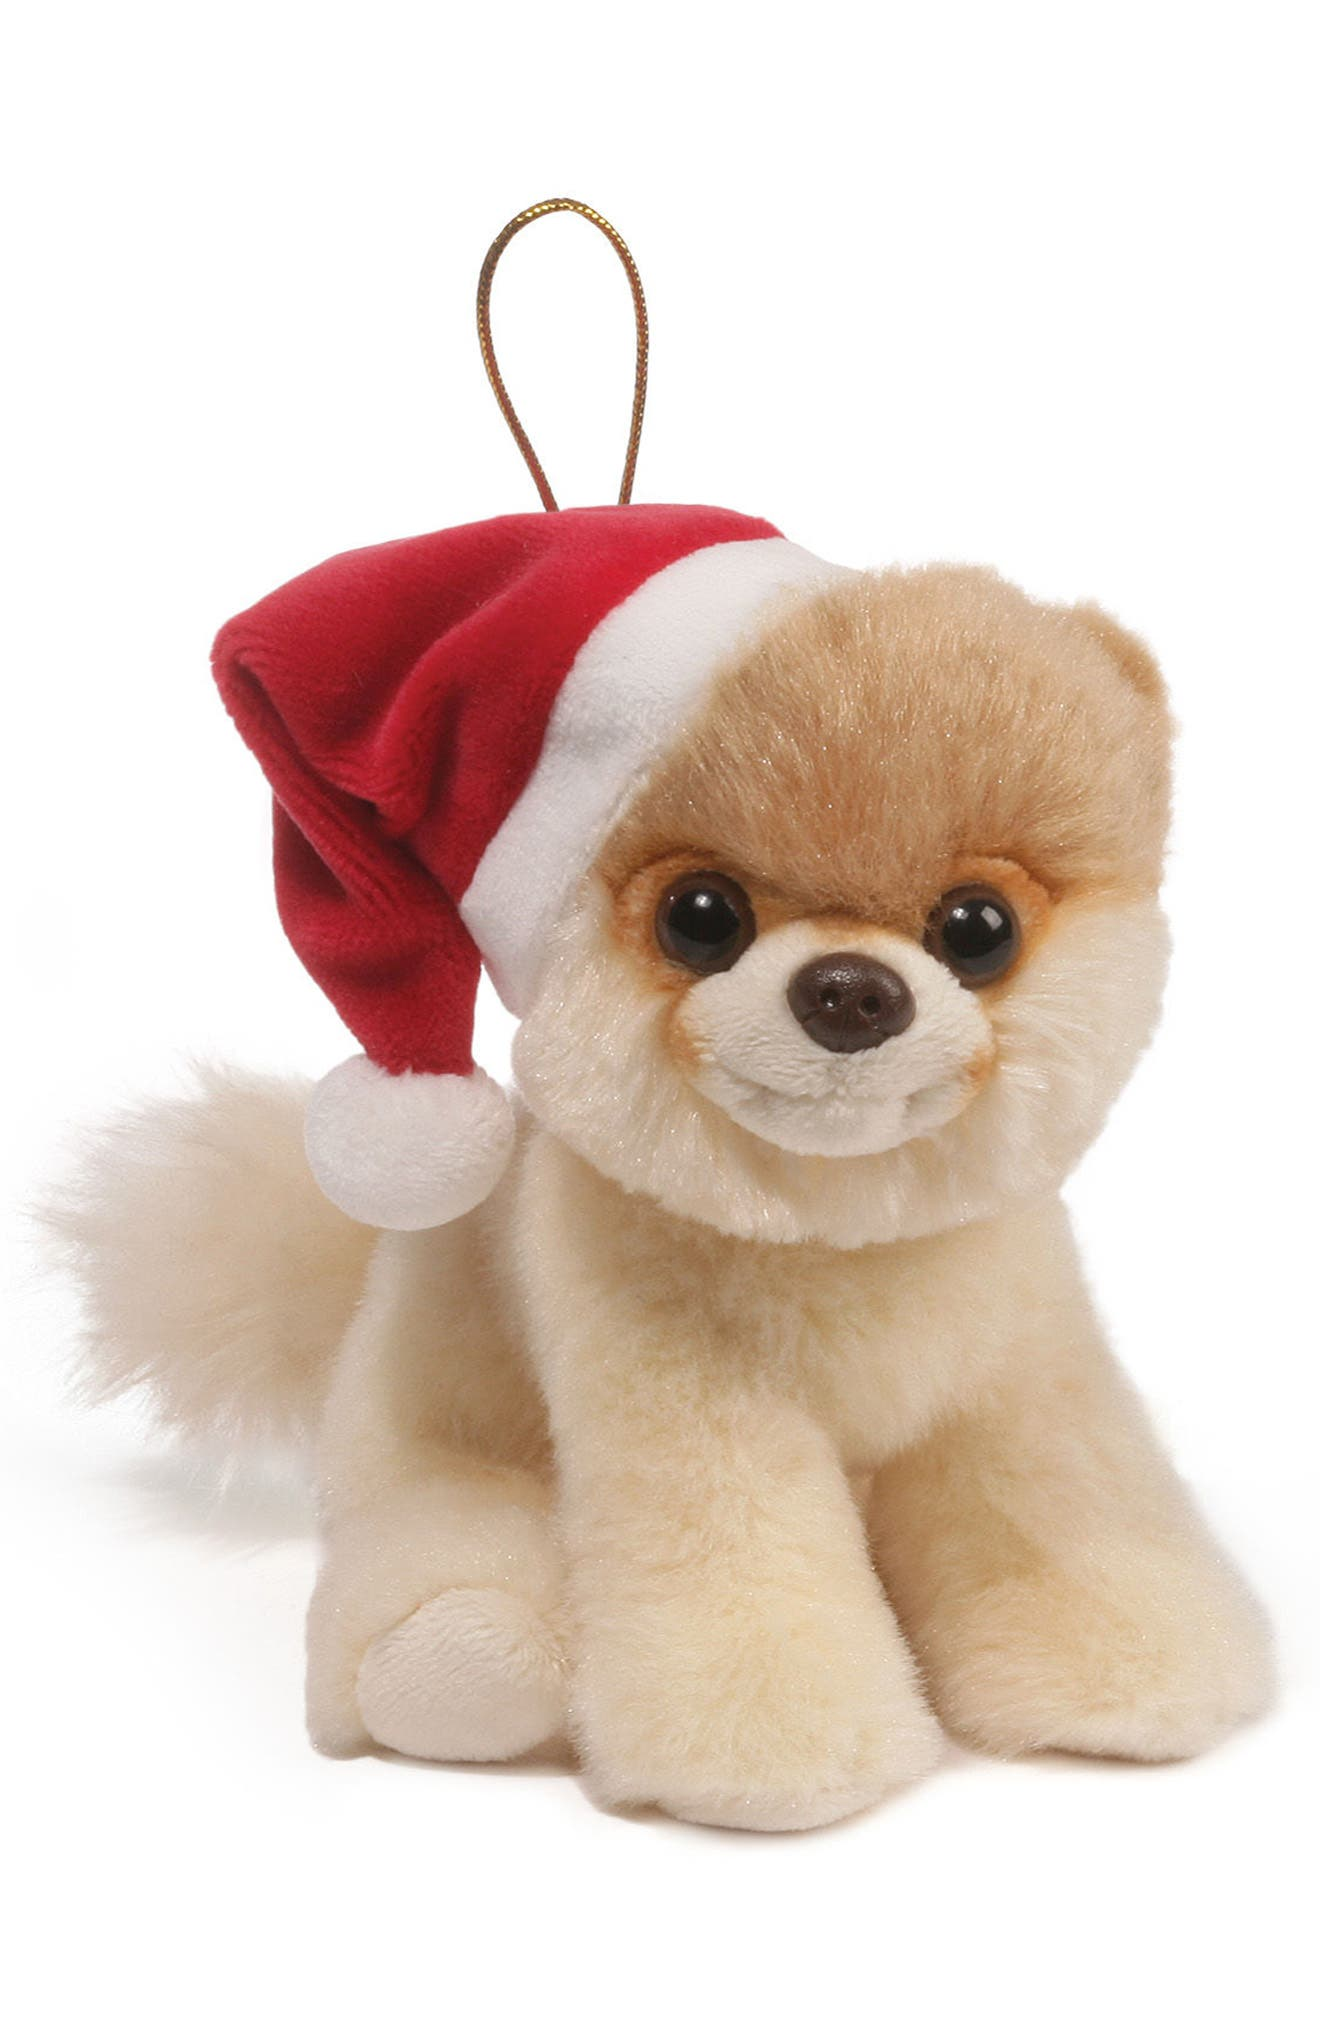 Gund Itty Bitty Boo Plush Stuffed Ornament